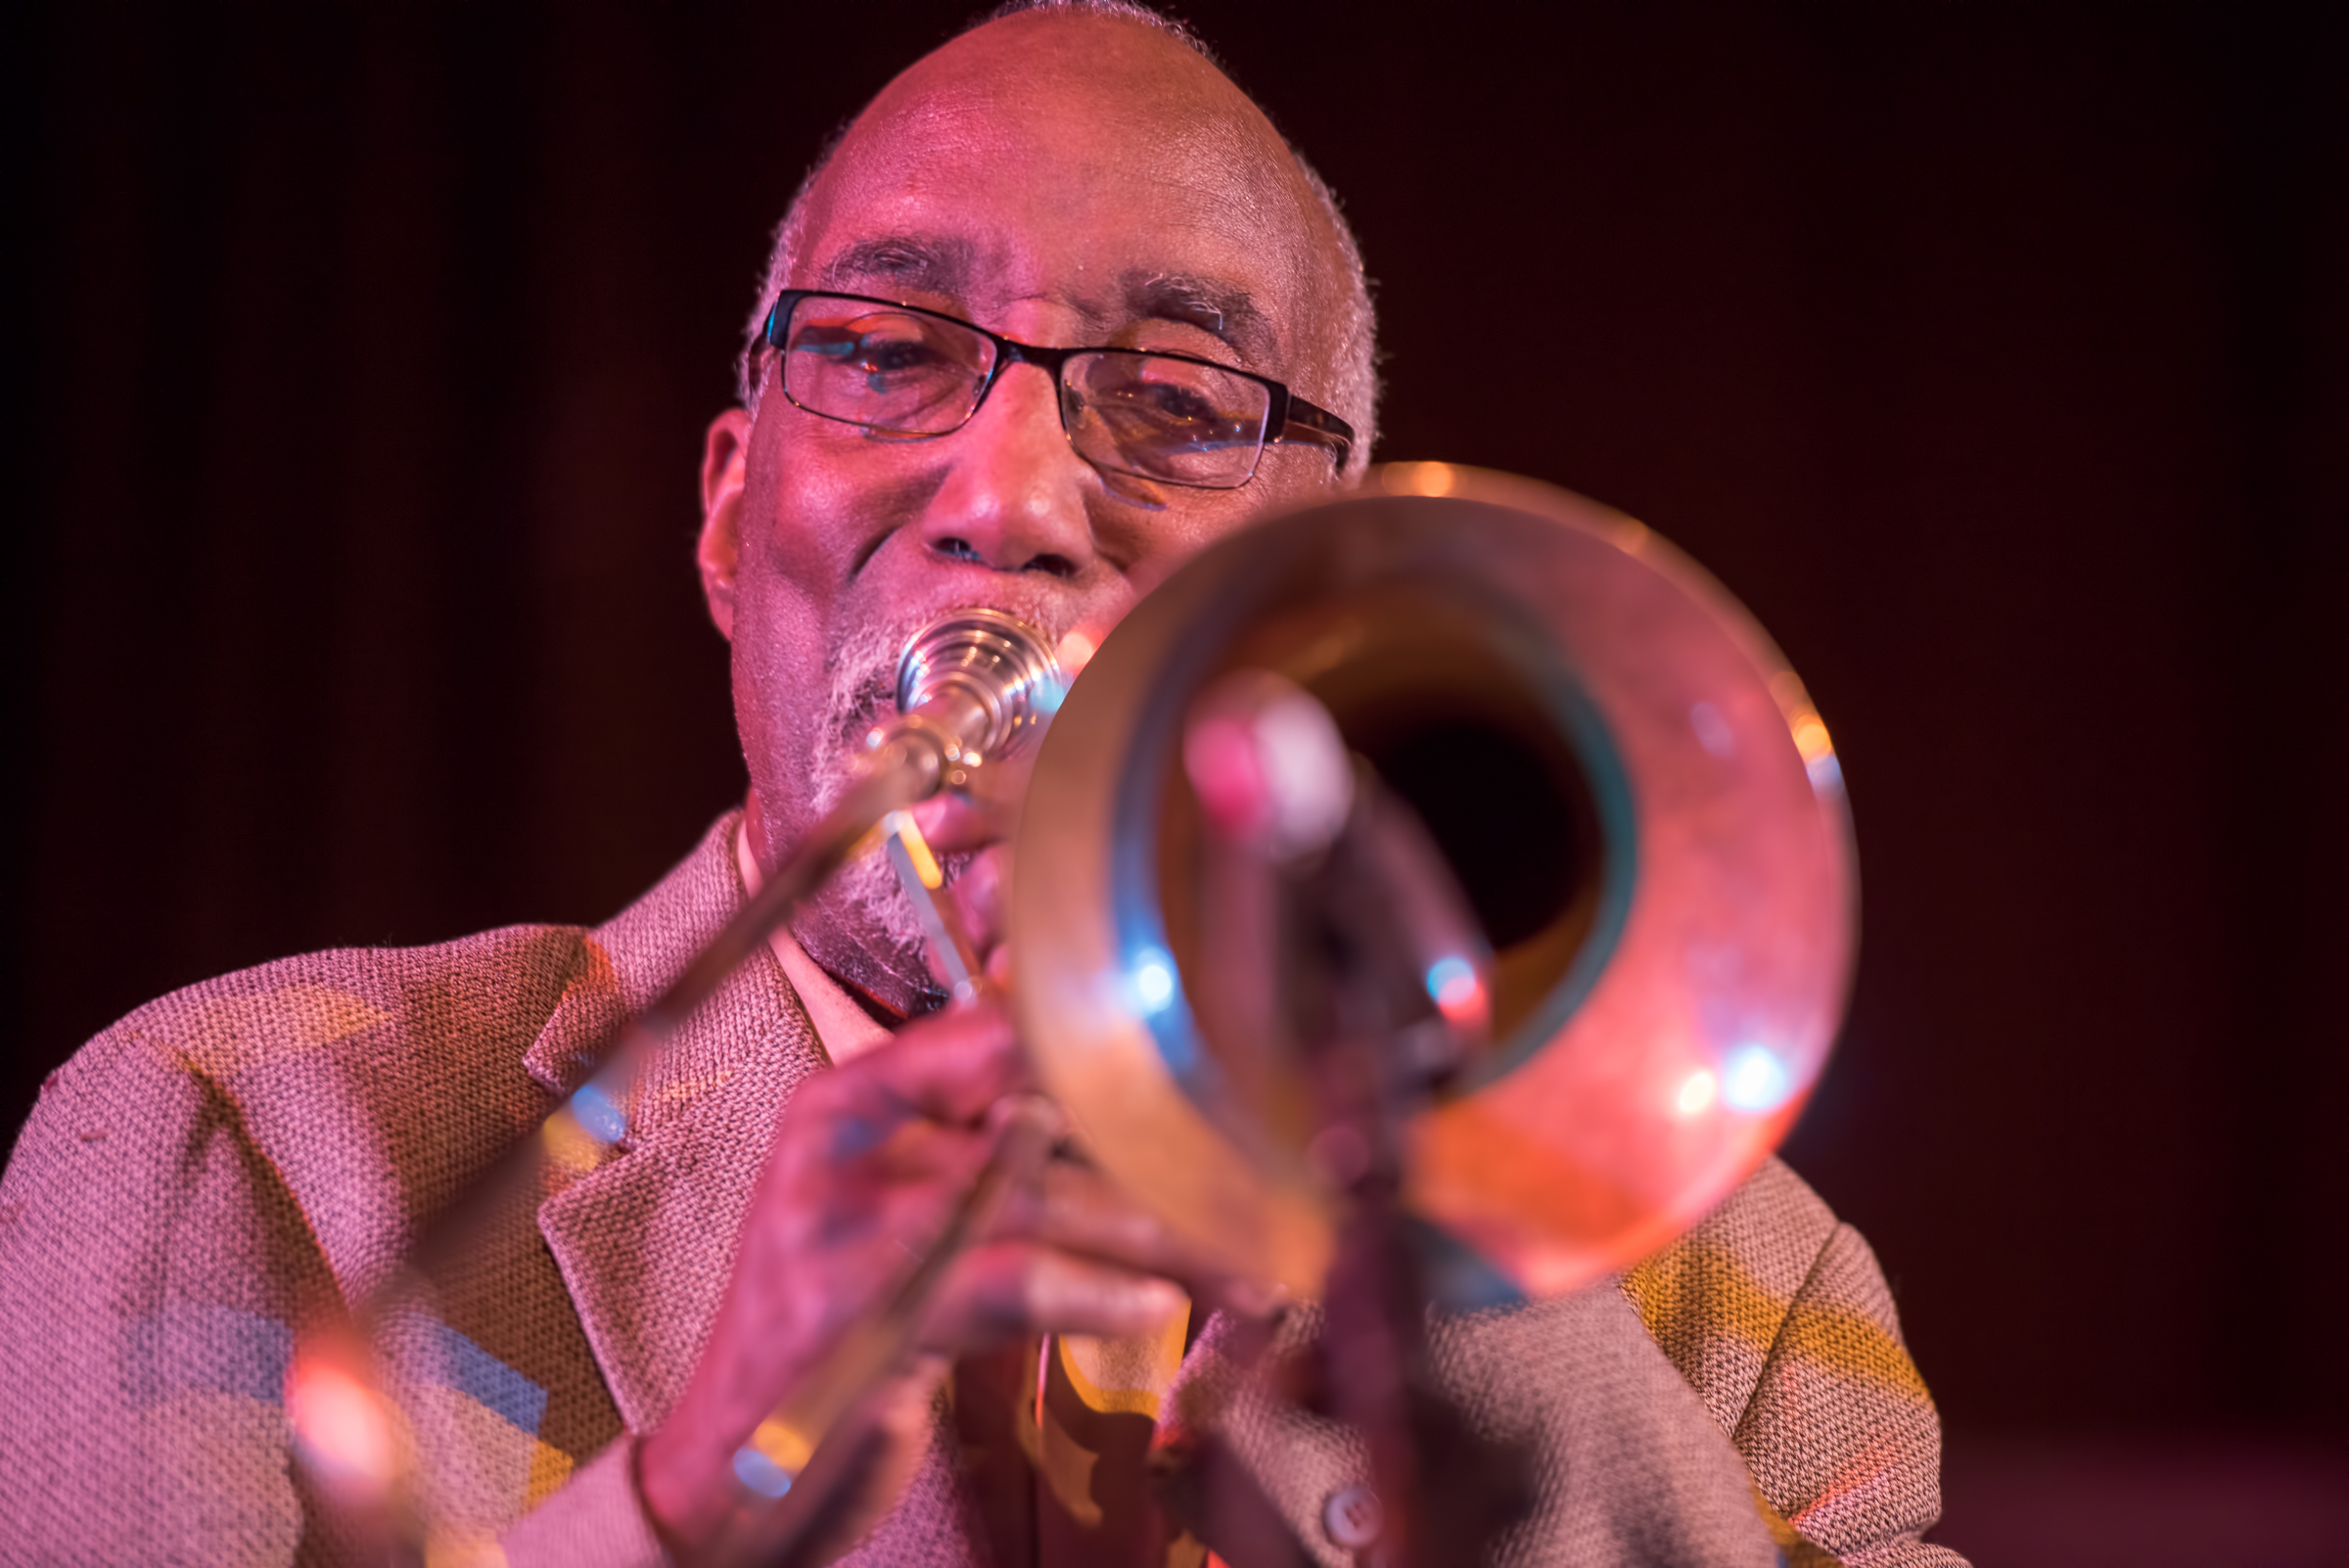 Curtis Fowlkes with Strange and Beautiful: the Music of John Lurie and the Lounge Lizards at the Nyc Winter Jazzfest 2015